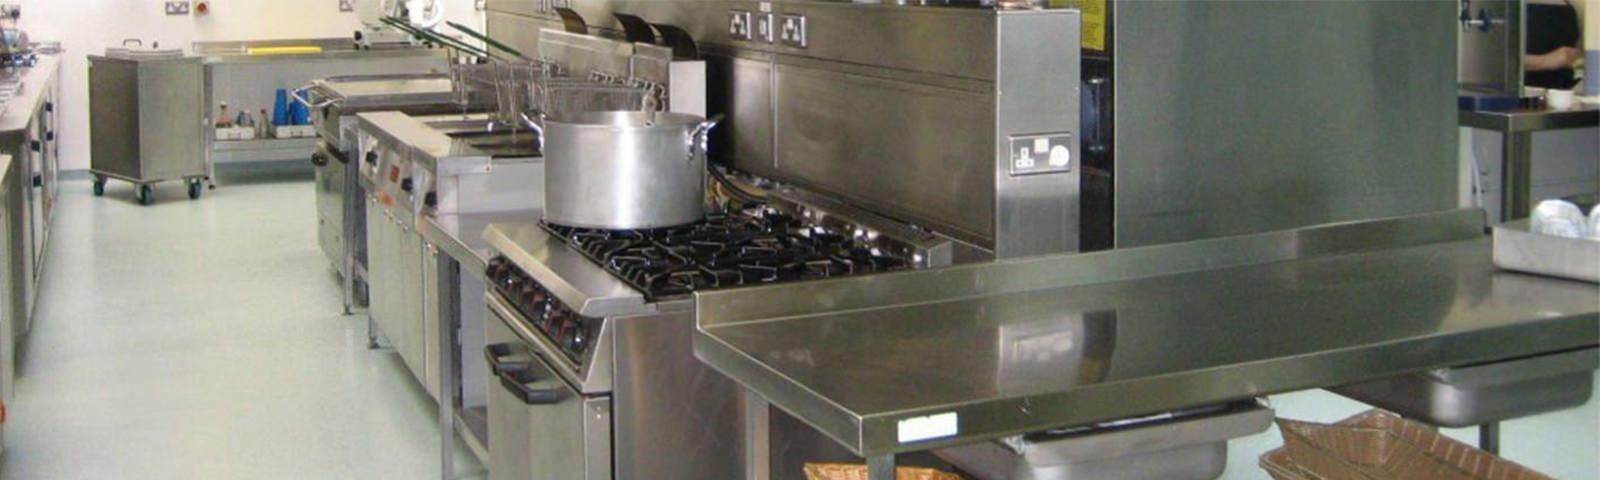 Commercial Appliance Repairs London Services